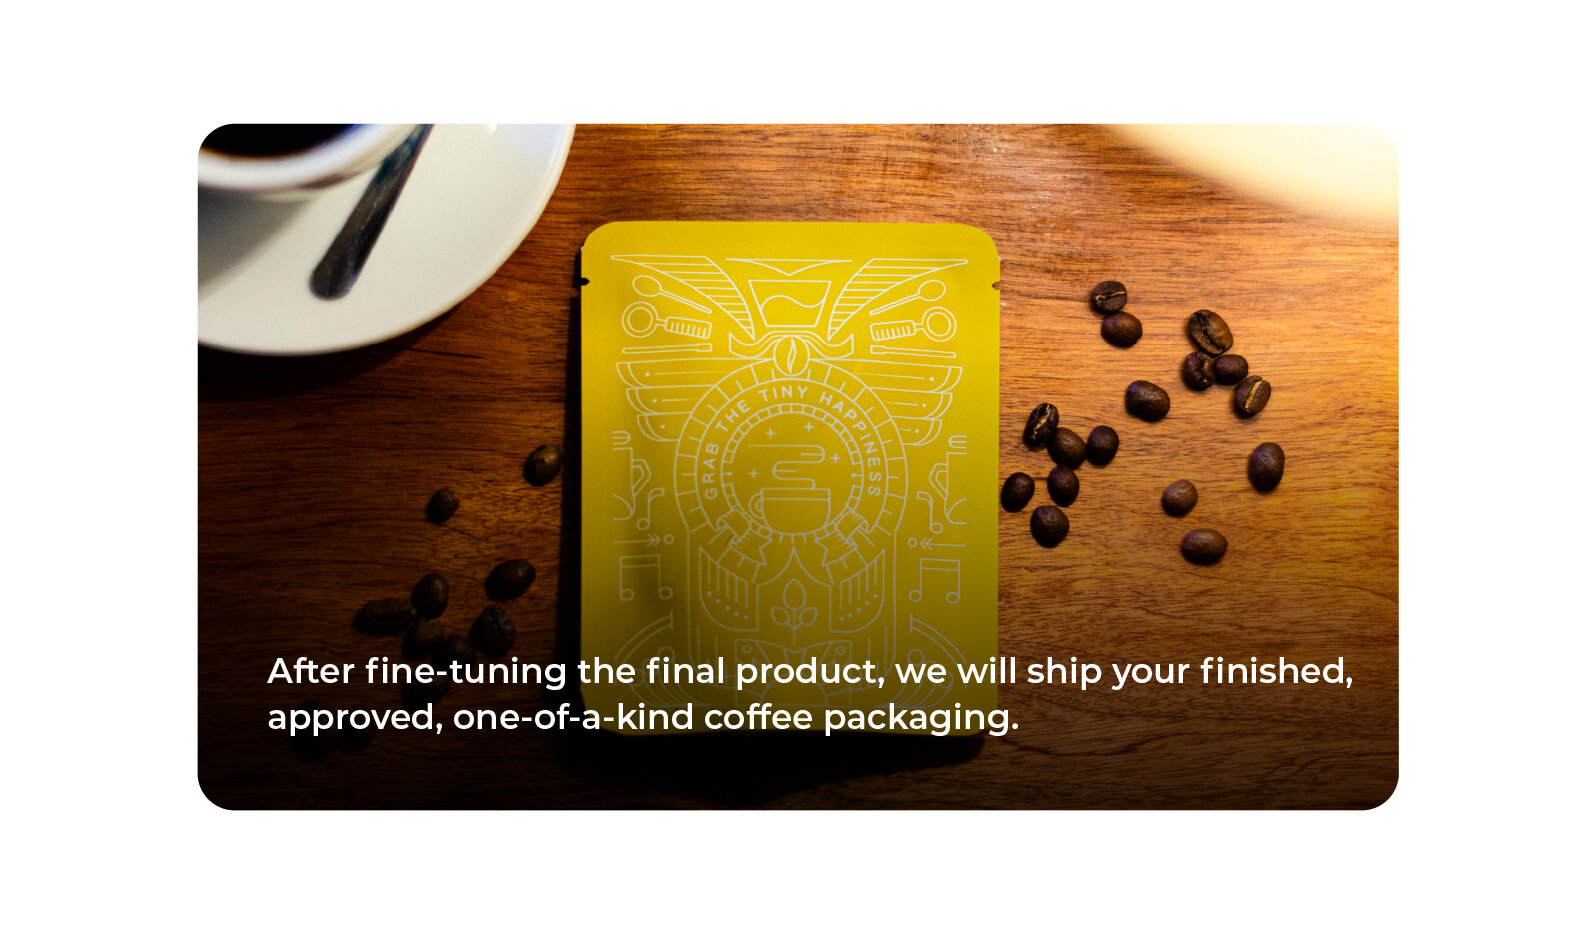 One-of-a-kind coffee packaging